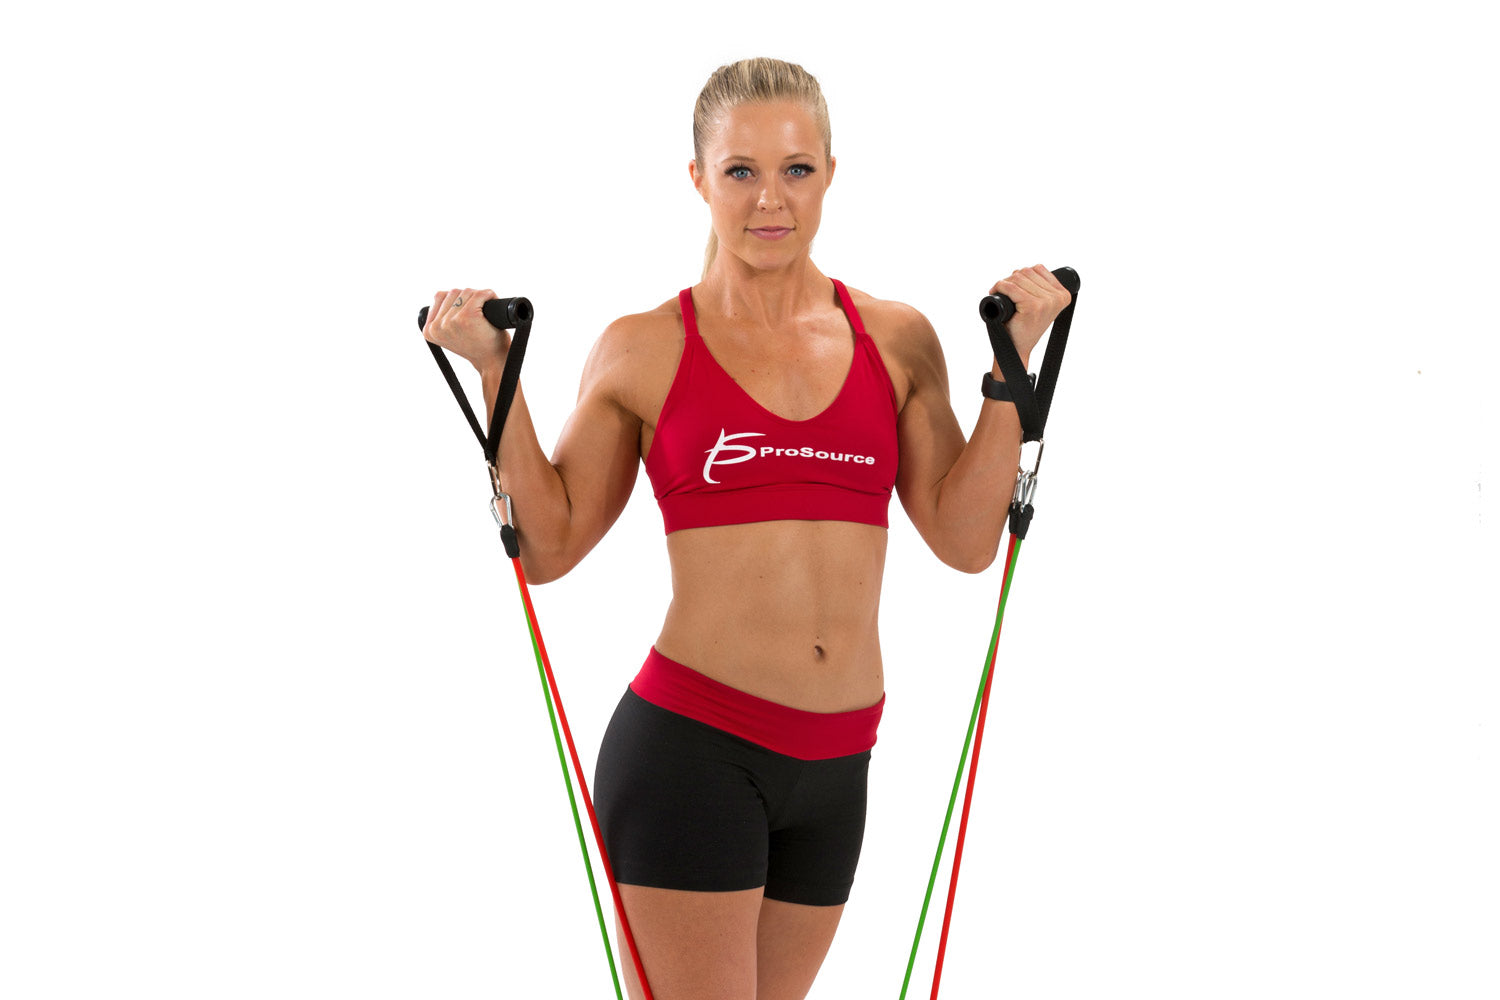 ProSource 9 Upper Body Resistance Band Exercises - Hotel and Travel Resistance Bands Workout | Buy Resistance Bands